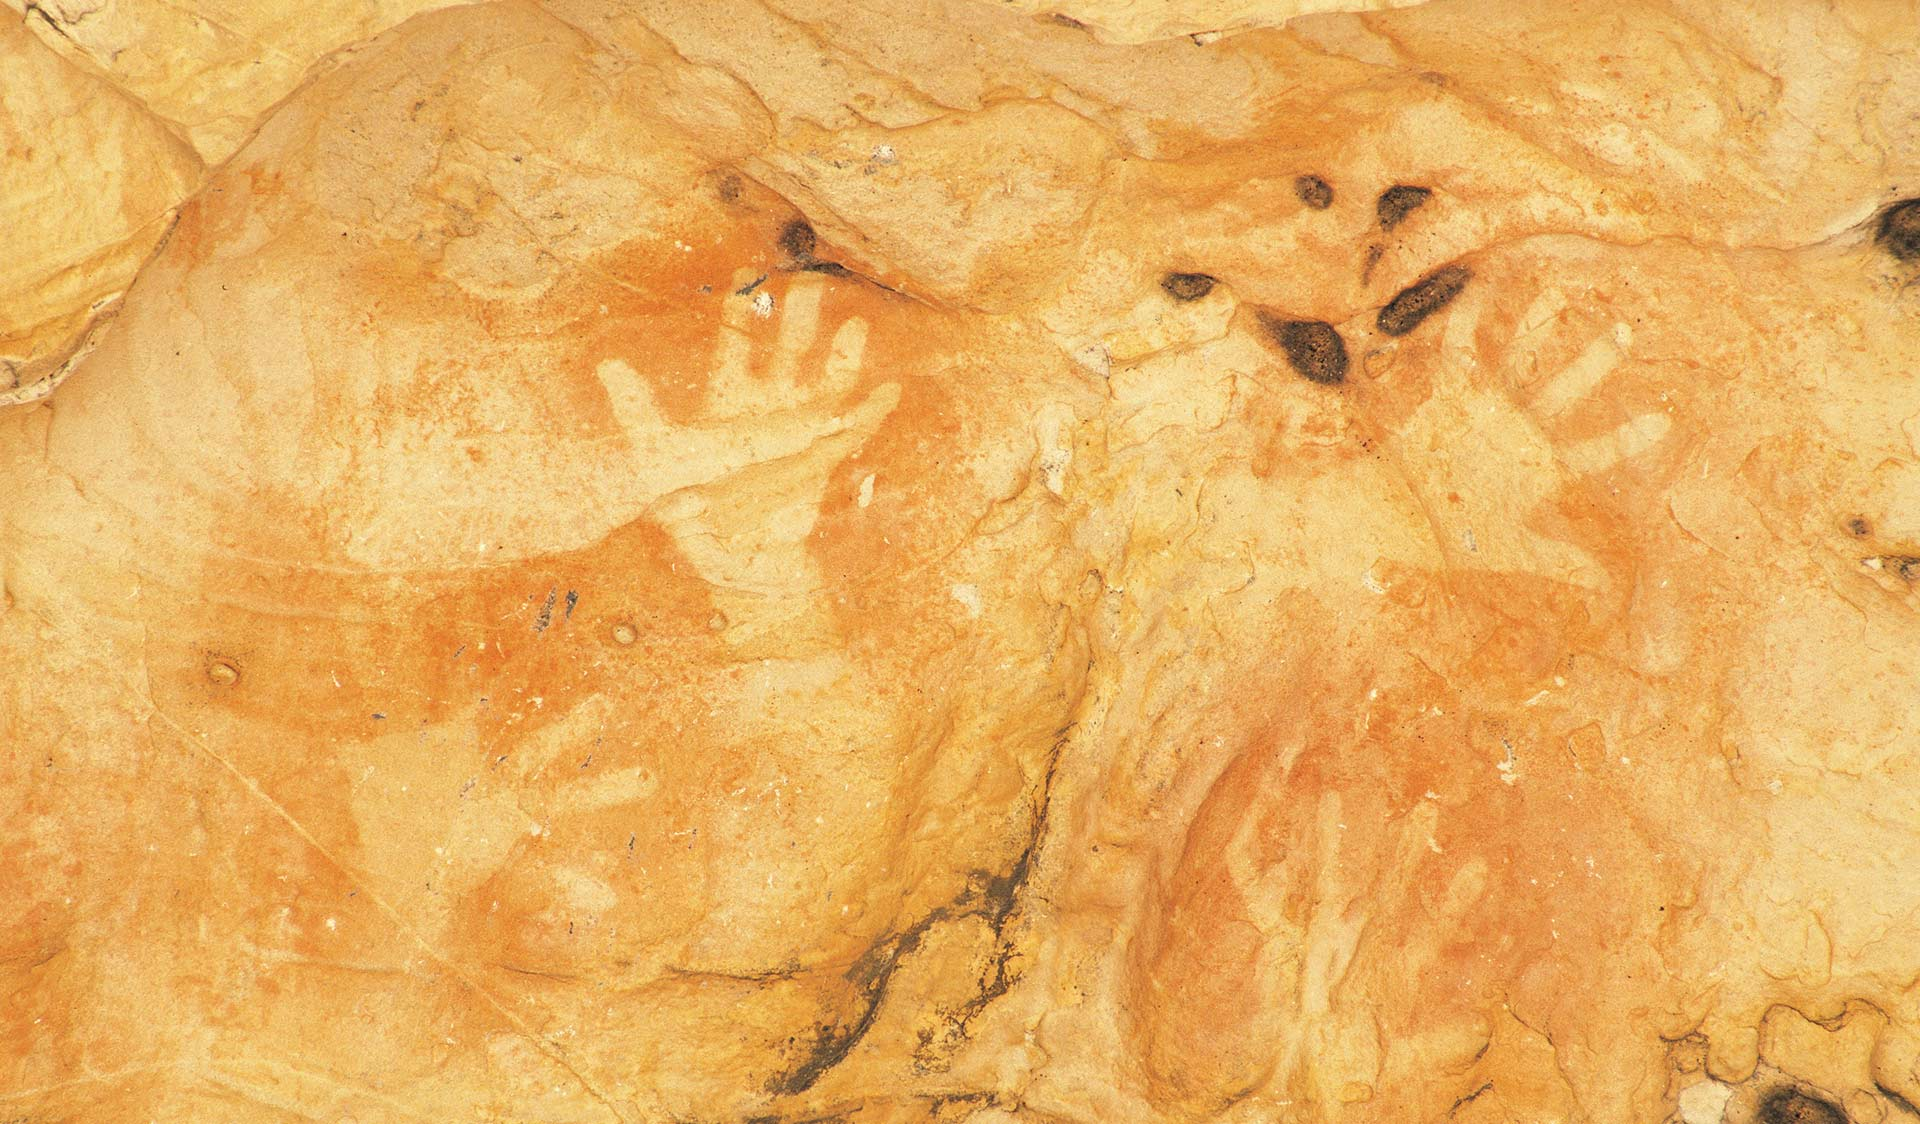 Aboriginal rock art at Gulgurn Manja Shelter in the Grampians National Park.